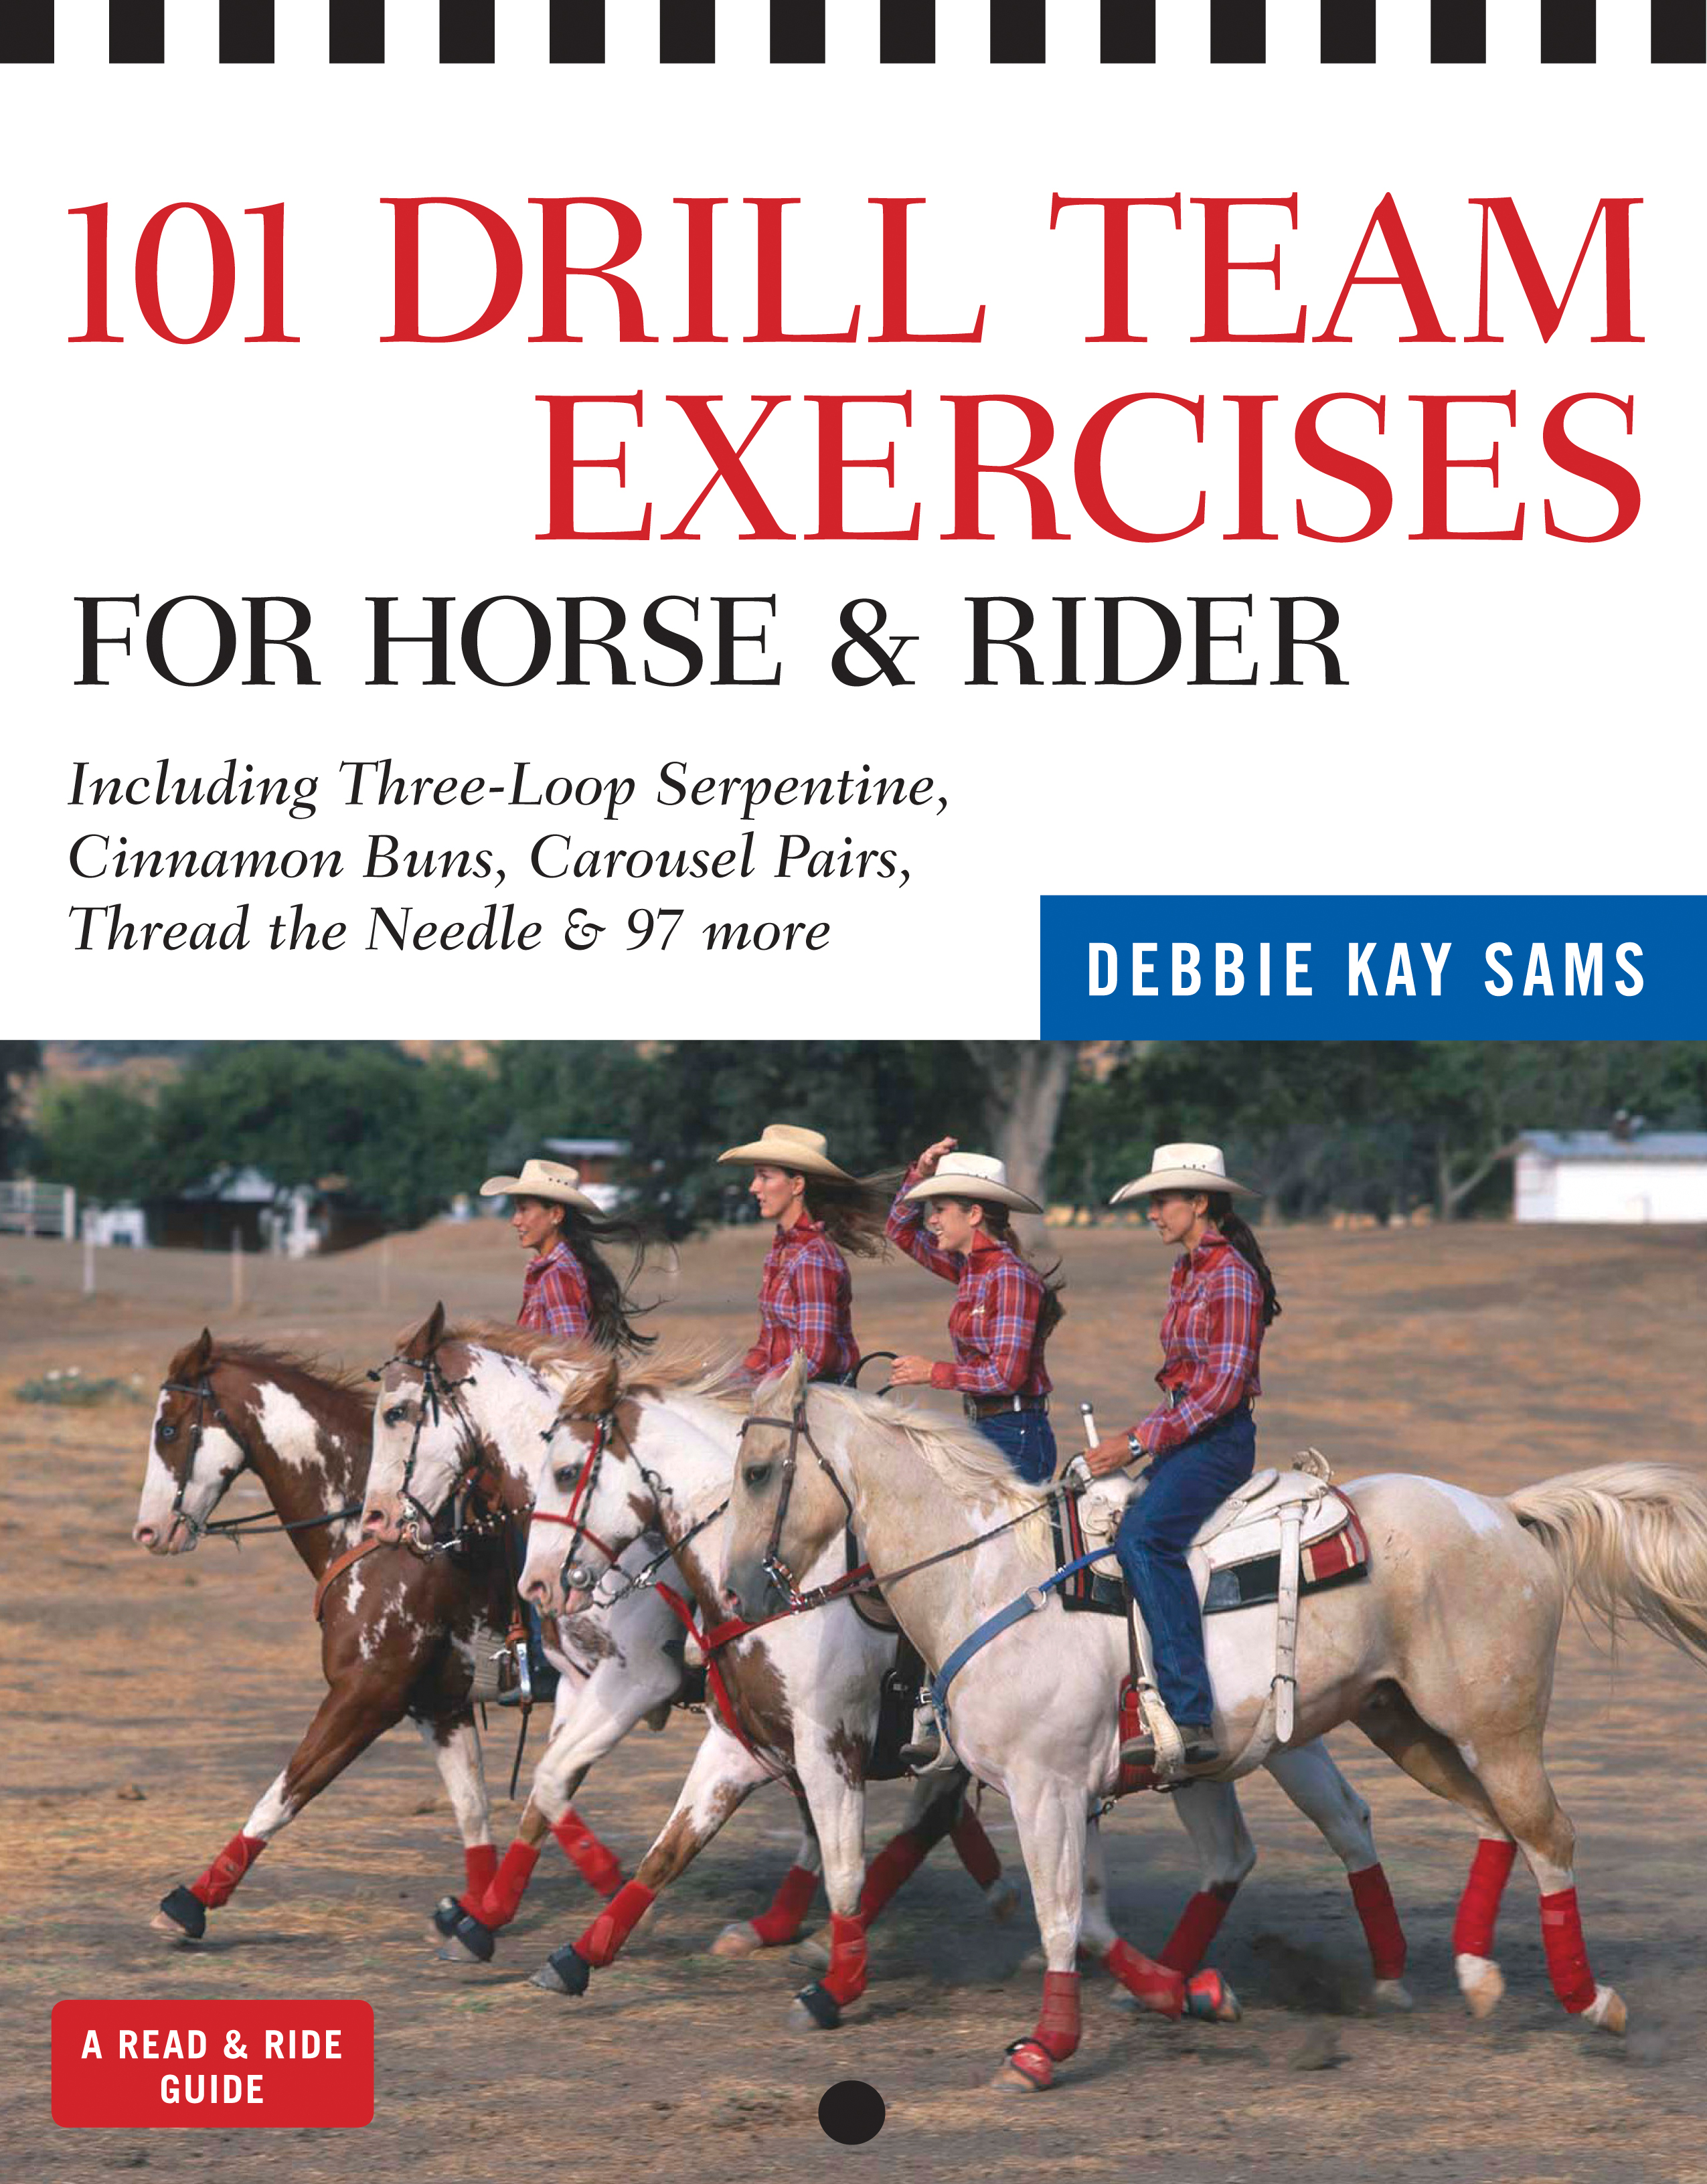 101 Drill Team Exercises for Horse & Rider Including Three-Loop Serpentine, Cinnamon Buns, Carousel Pairs, Thread the Needle & 97 more - Debbie Kay Sams